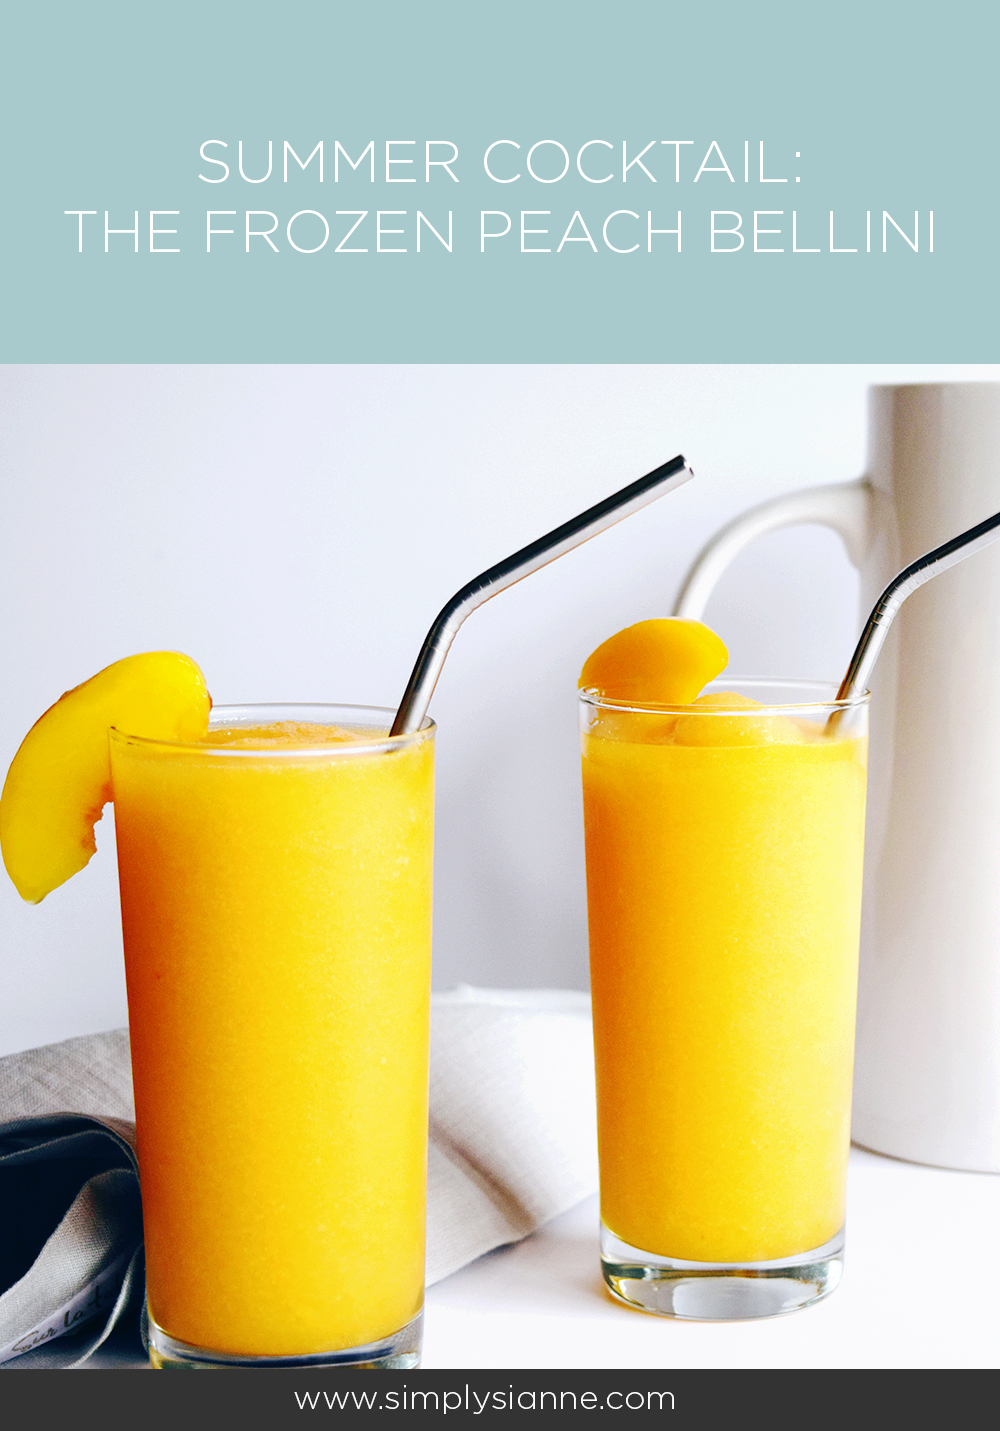 This frozen peach bellini cocktail is the perfect summer beverage!